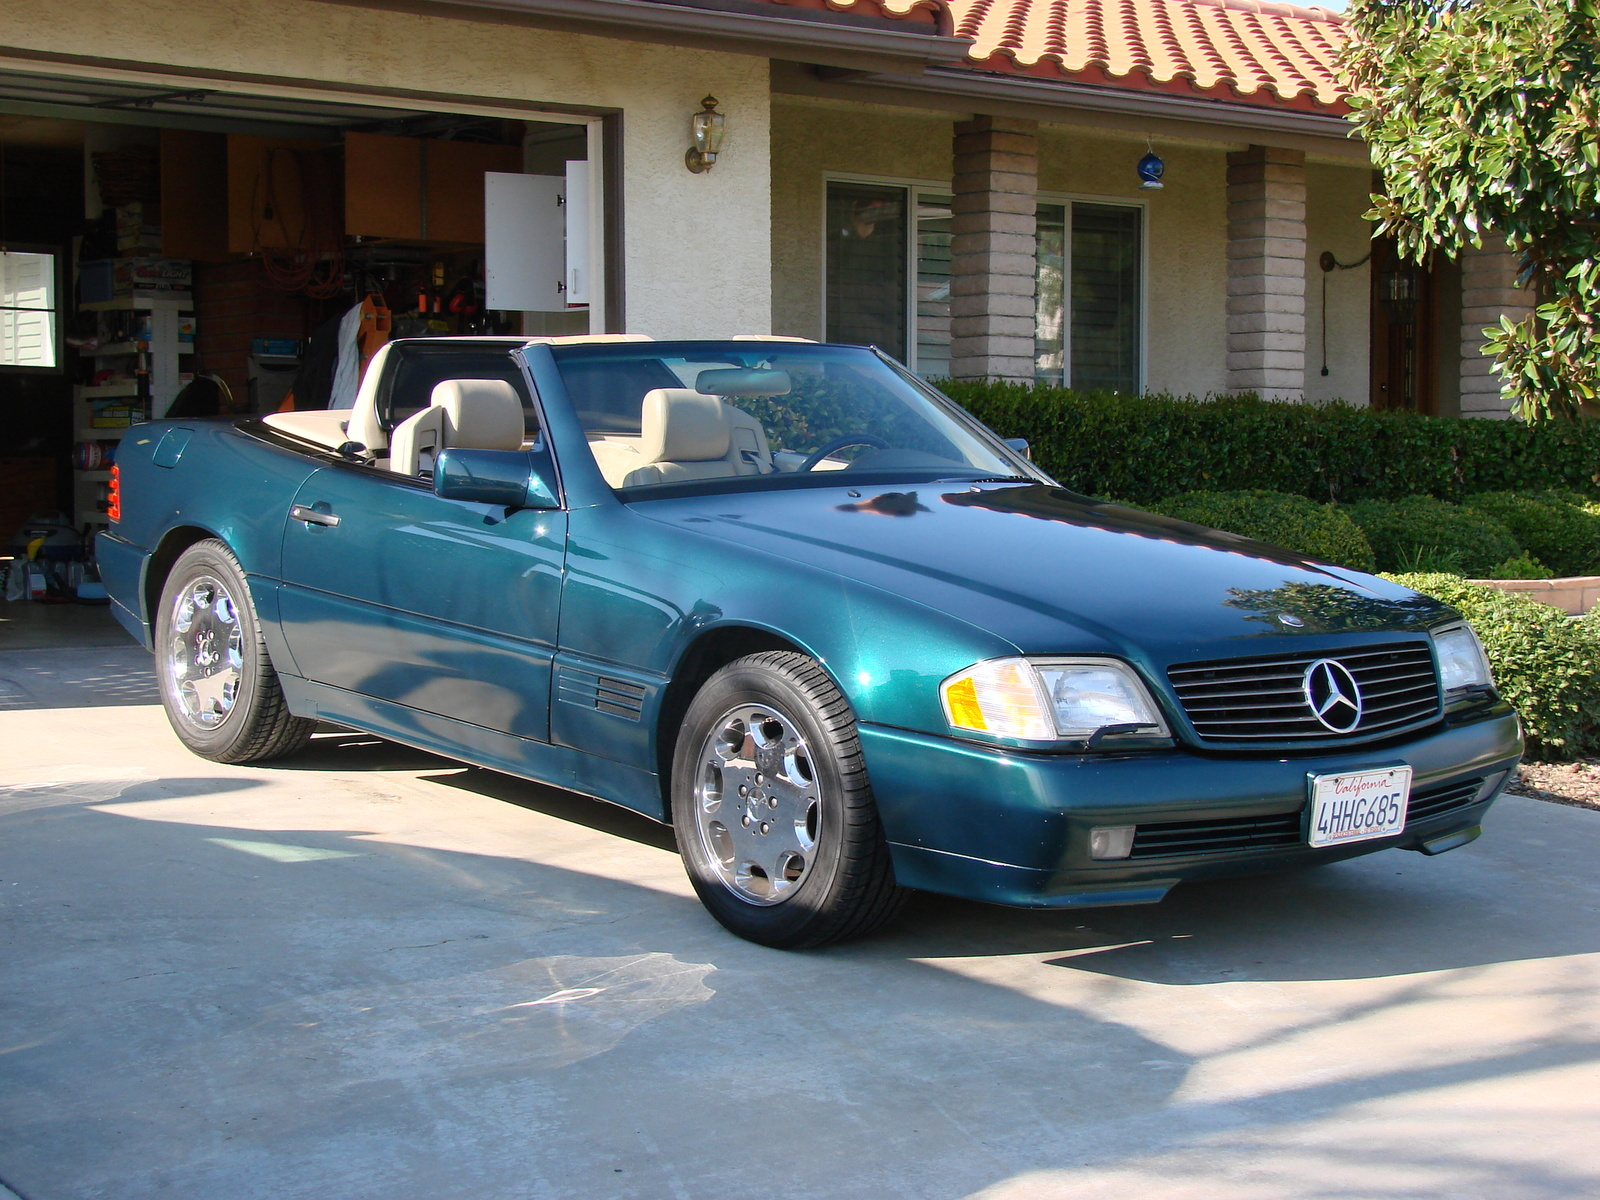 Picture of 1995 mercedes benz sl class sl500 exterior for 1995 mercedes benz sl500